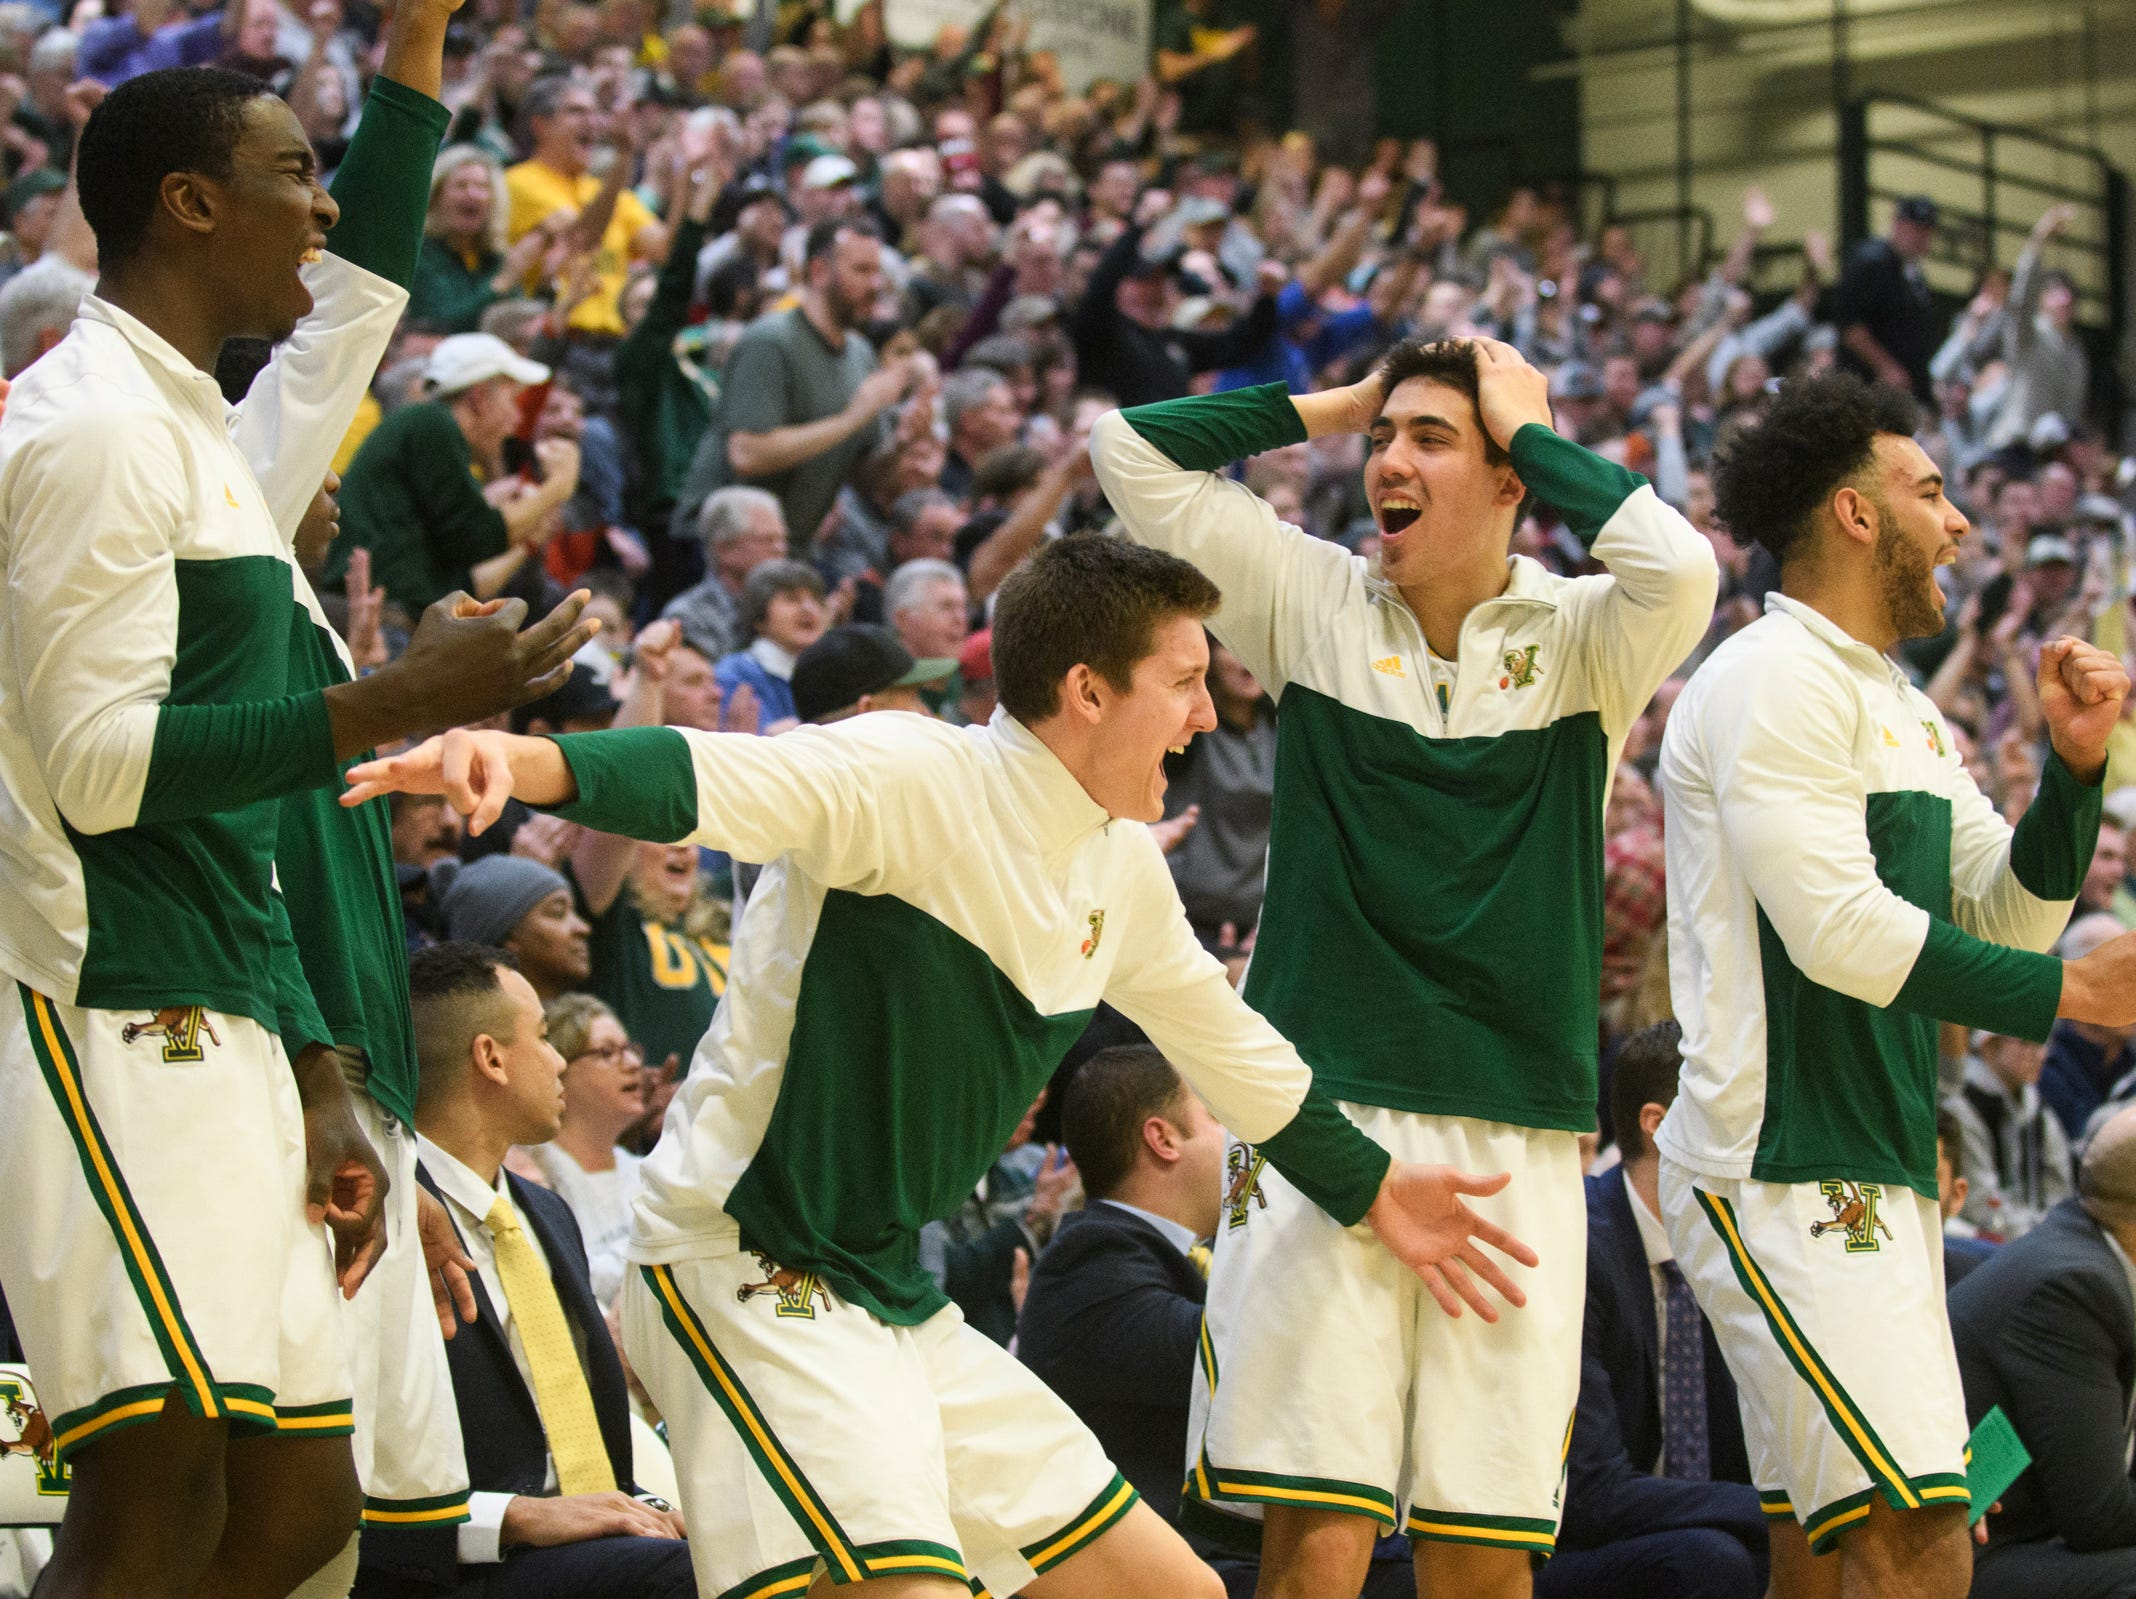 The Vermont bench reacts to a three pointer by Vermont guard Ernie Duncan (20) (Not pictured) during the men's basketball game between the Albany Great Danes and the Vermont Catamounts at Patrick Gym on Saturday February 9, 2019 in Burlington, Vermont.